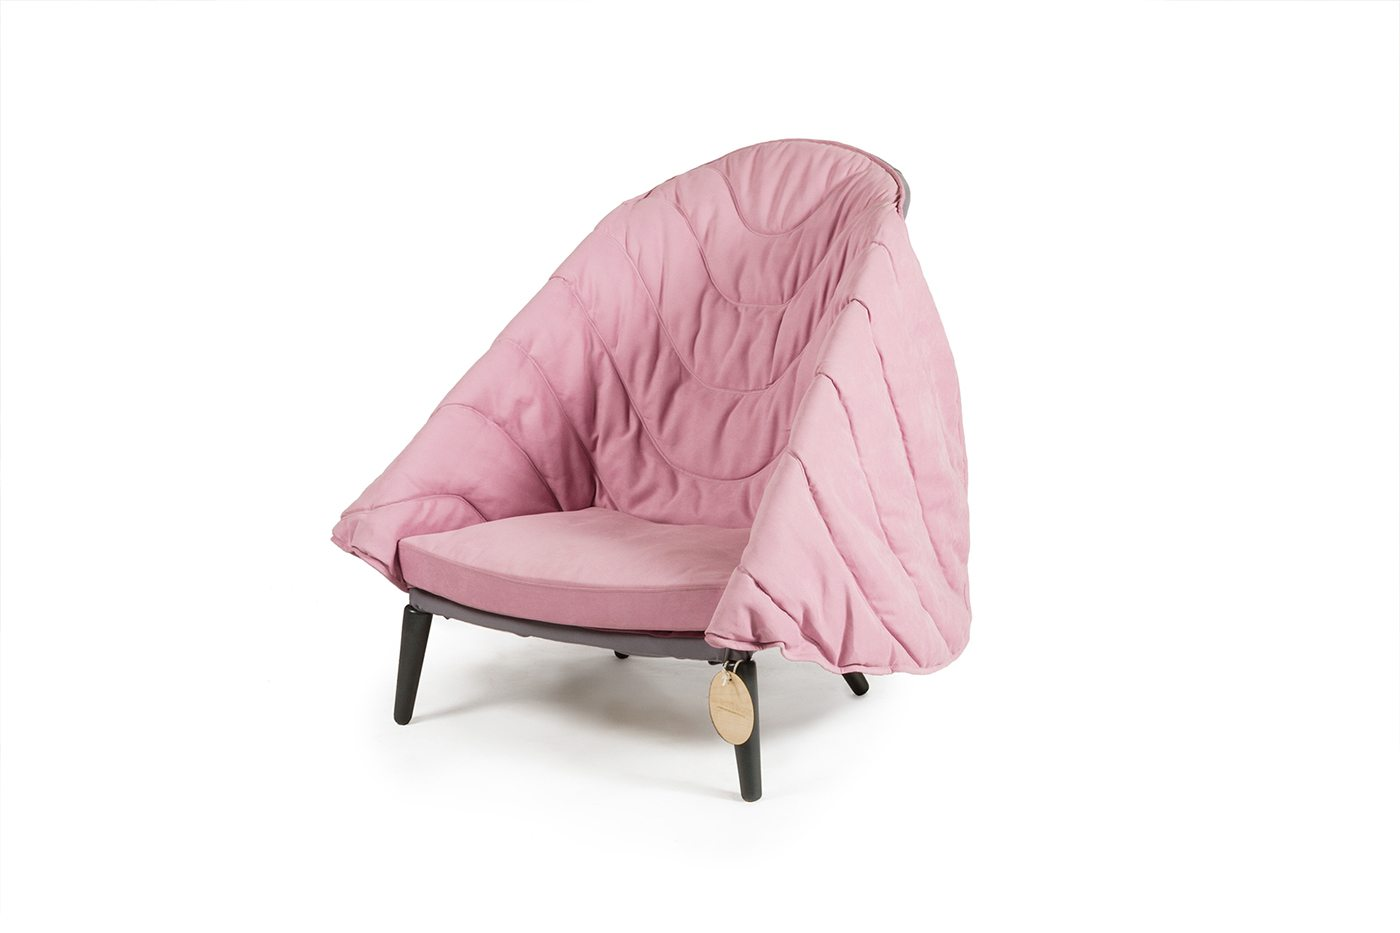 hang around chair pottery barn foam padding for kitchen chairs a best house interior today the cole has built in blanket simplemost ikea